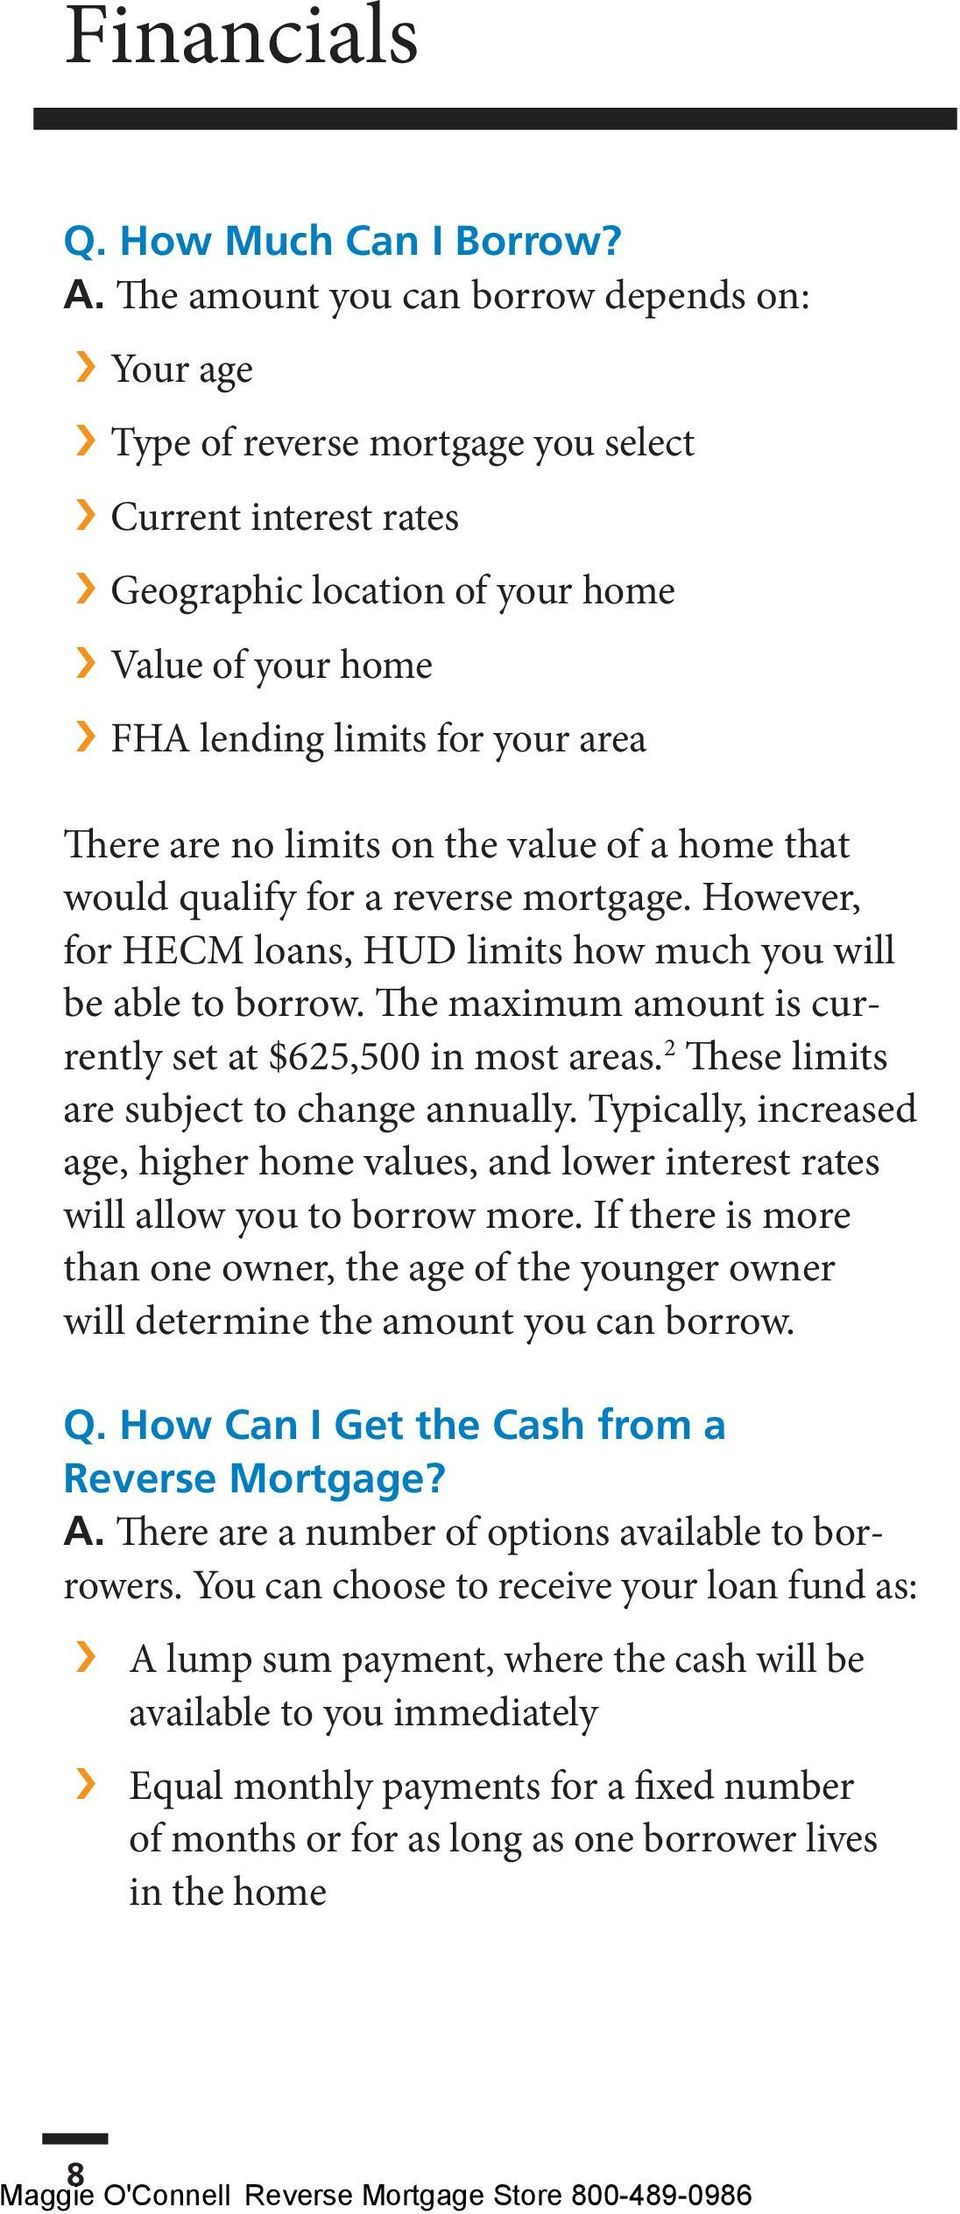 are no limits on the value of a home that would qualify for a reverse mortgage. However, for HECM loans, HUD limits how much you will be able to borrow.